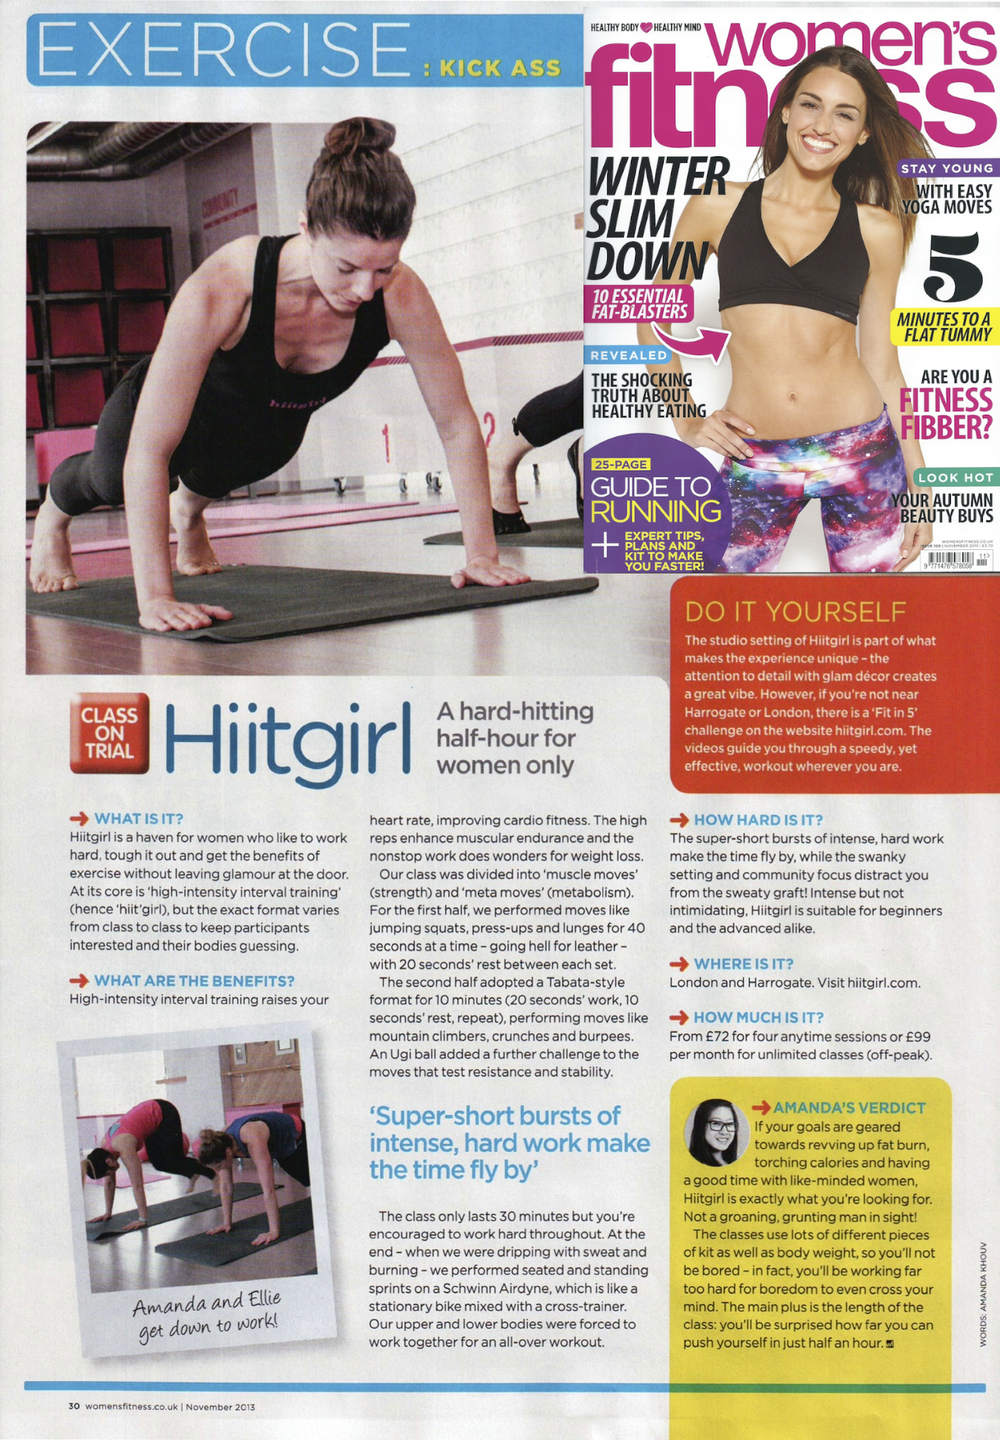 Women's Fitness, Nov 2013